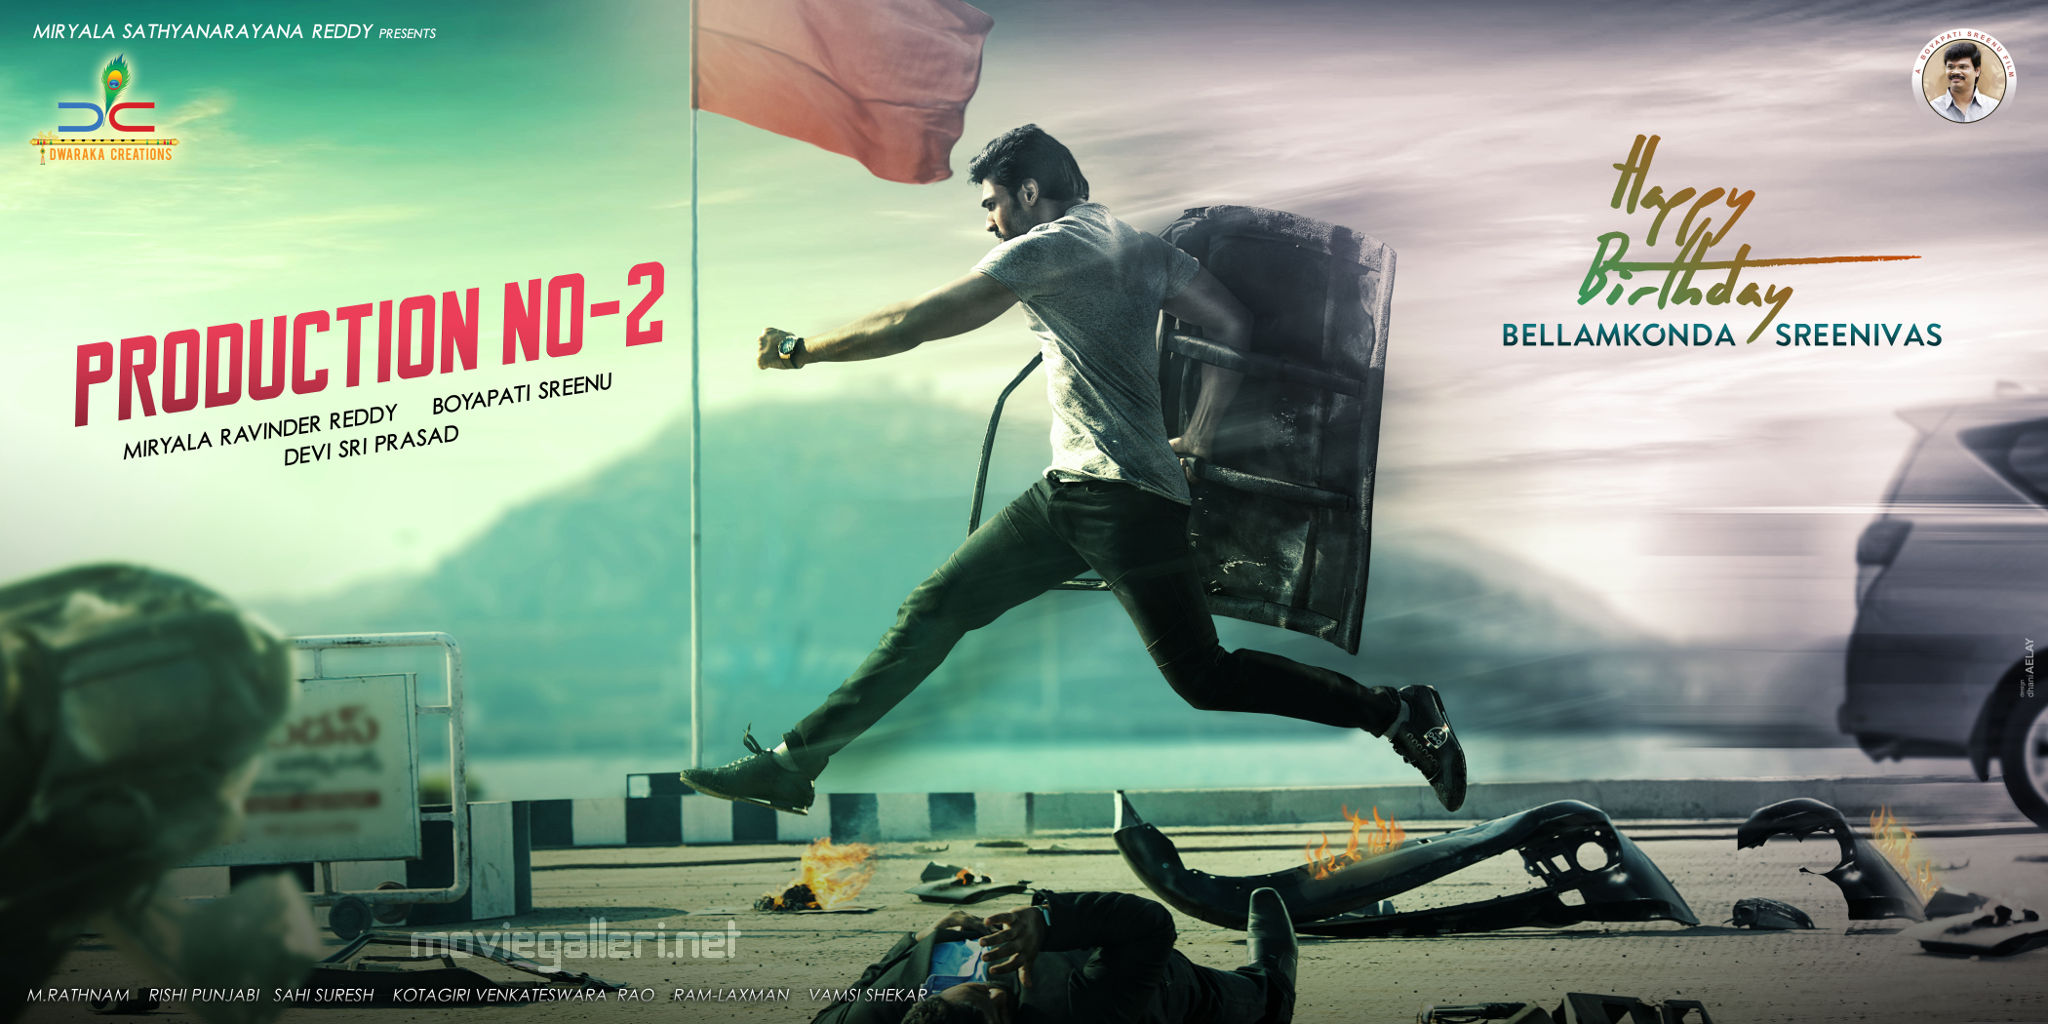 Dwaraka creations production no 2 - Bellamkonda Sreenivas Birthday poster